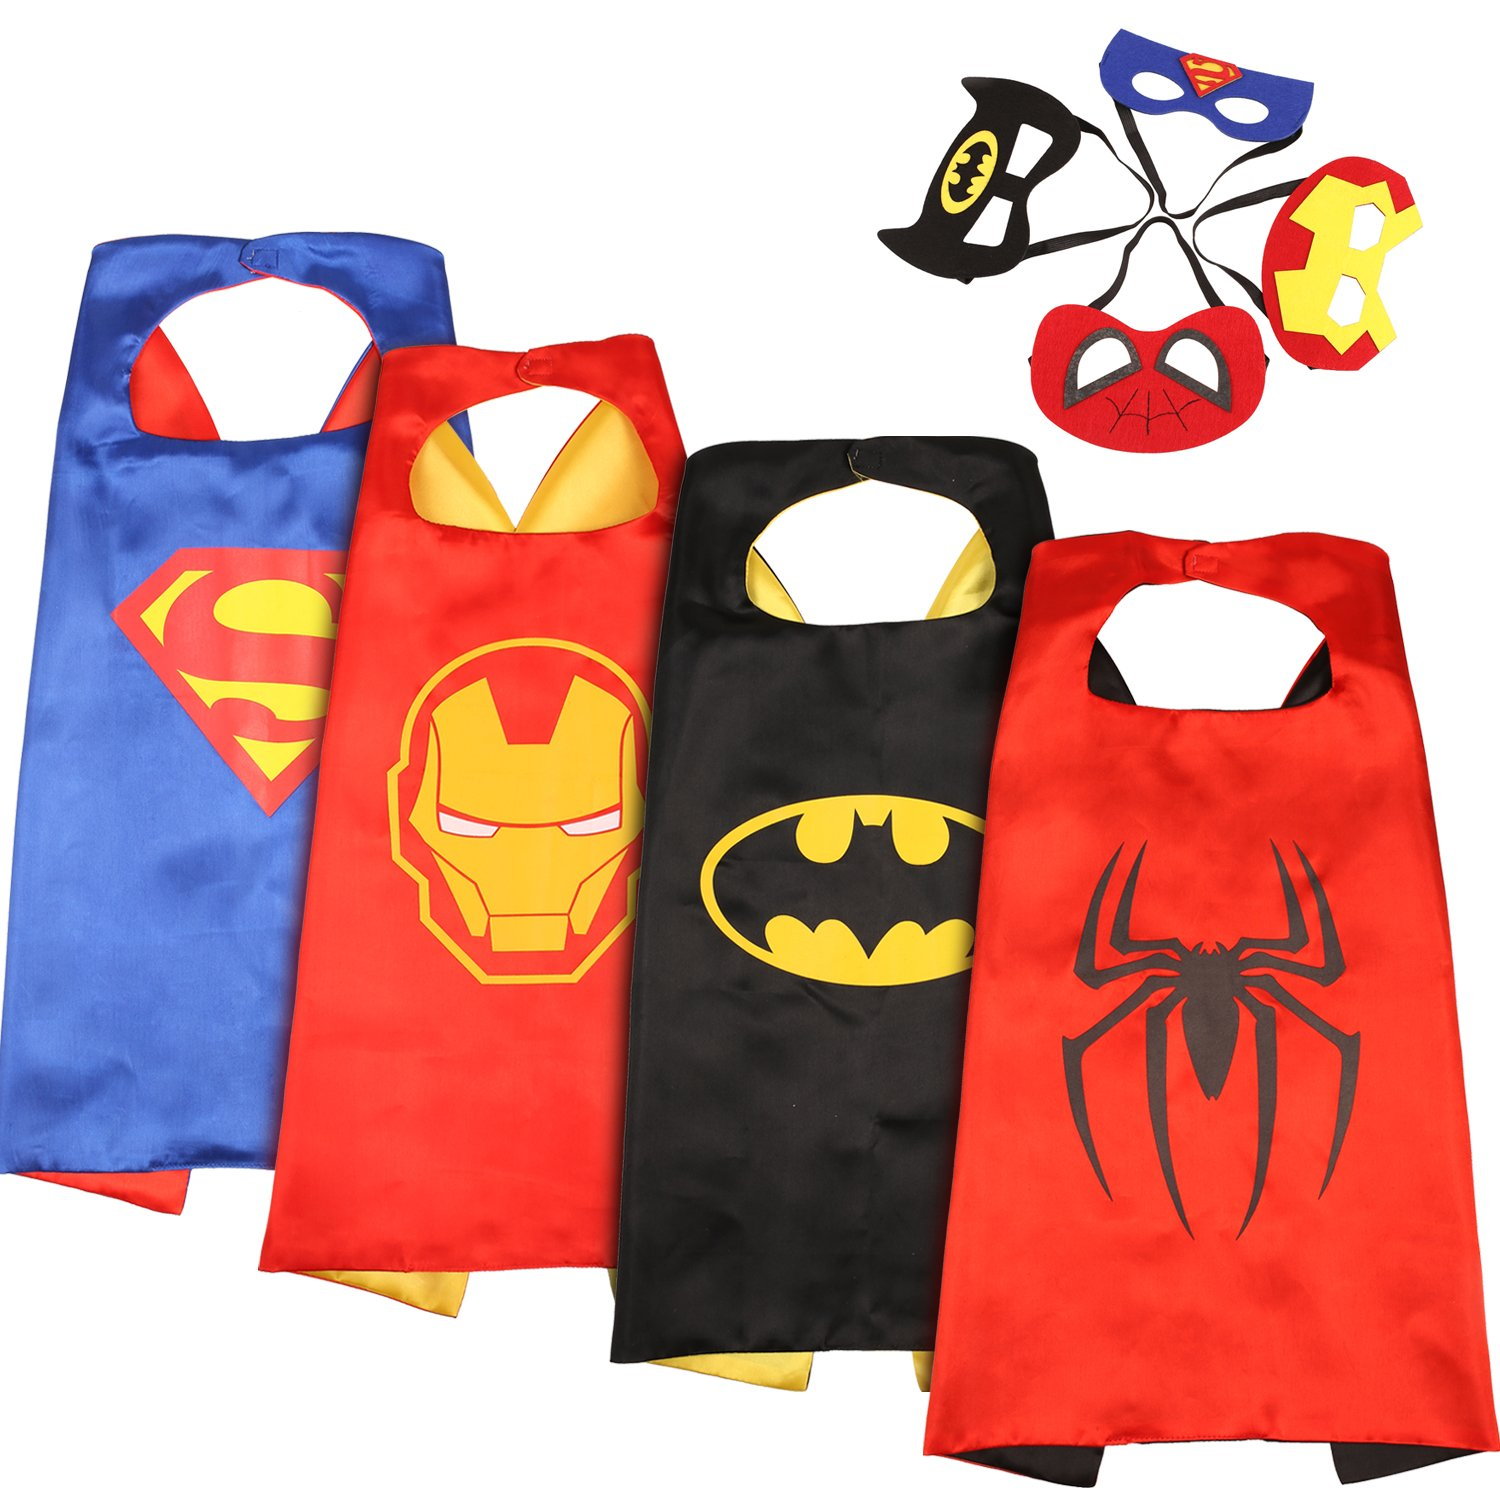 Comics Cartoon Superhelden Kostume Fur Kinder 5er Set Capes Und